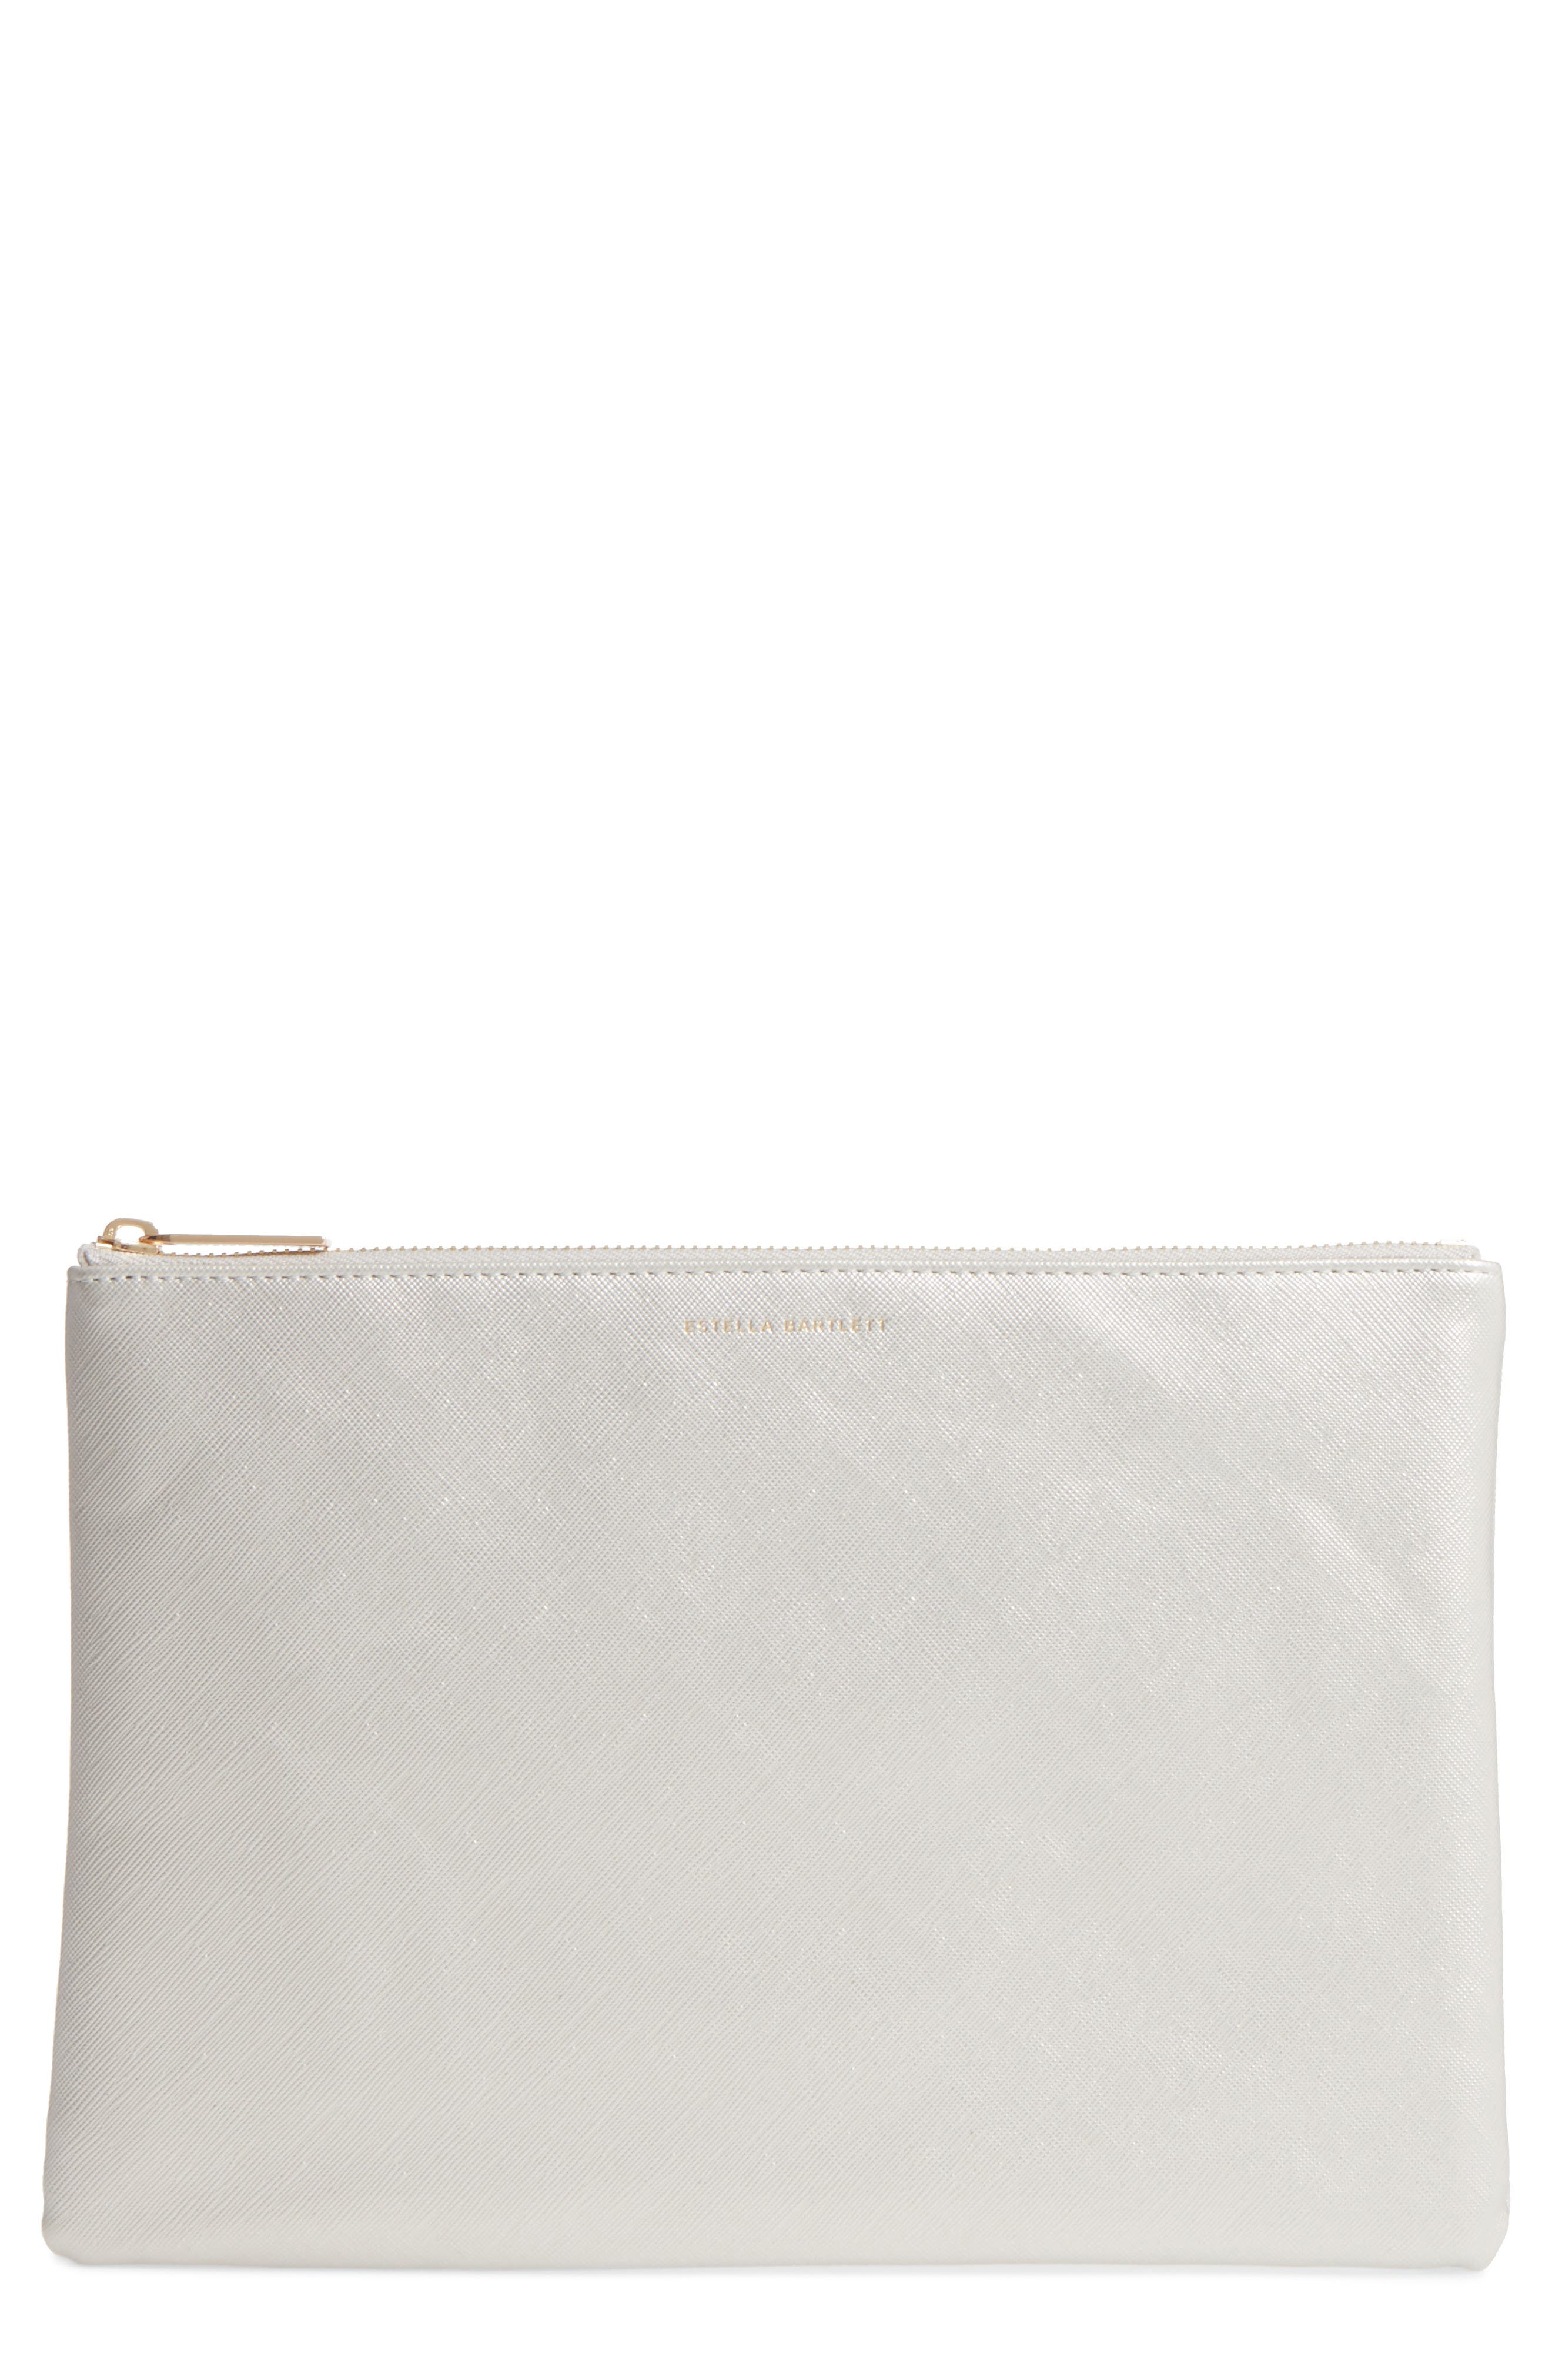 Alternate Image 1 Selected - Estella Bartlett No Reason Not To Follow Faux Leather Pouch